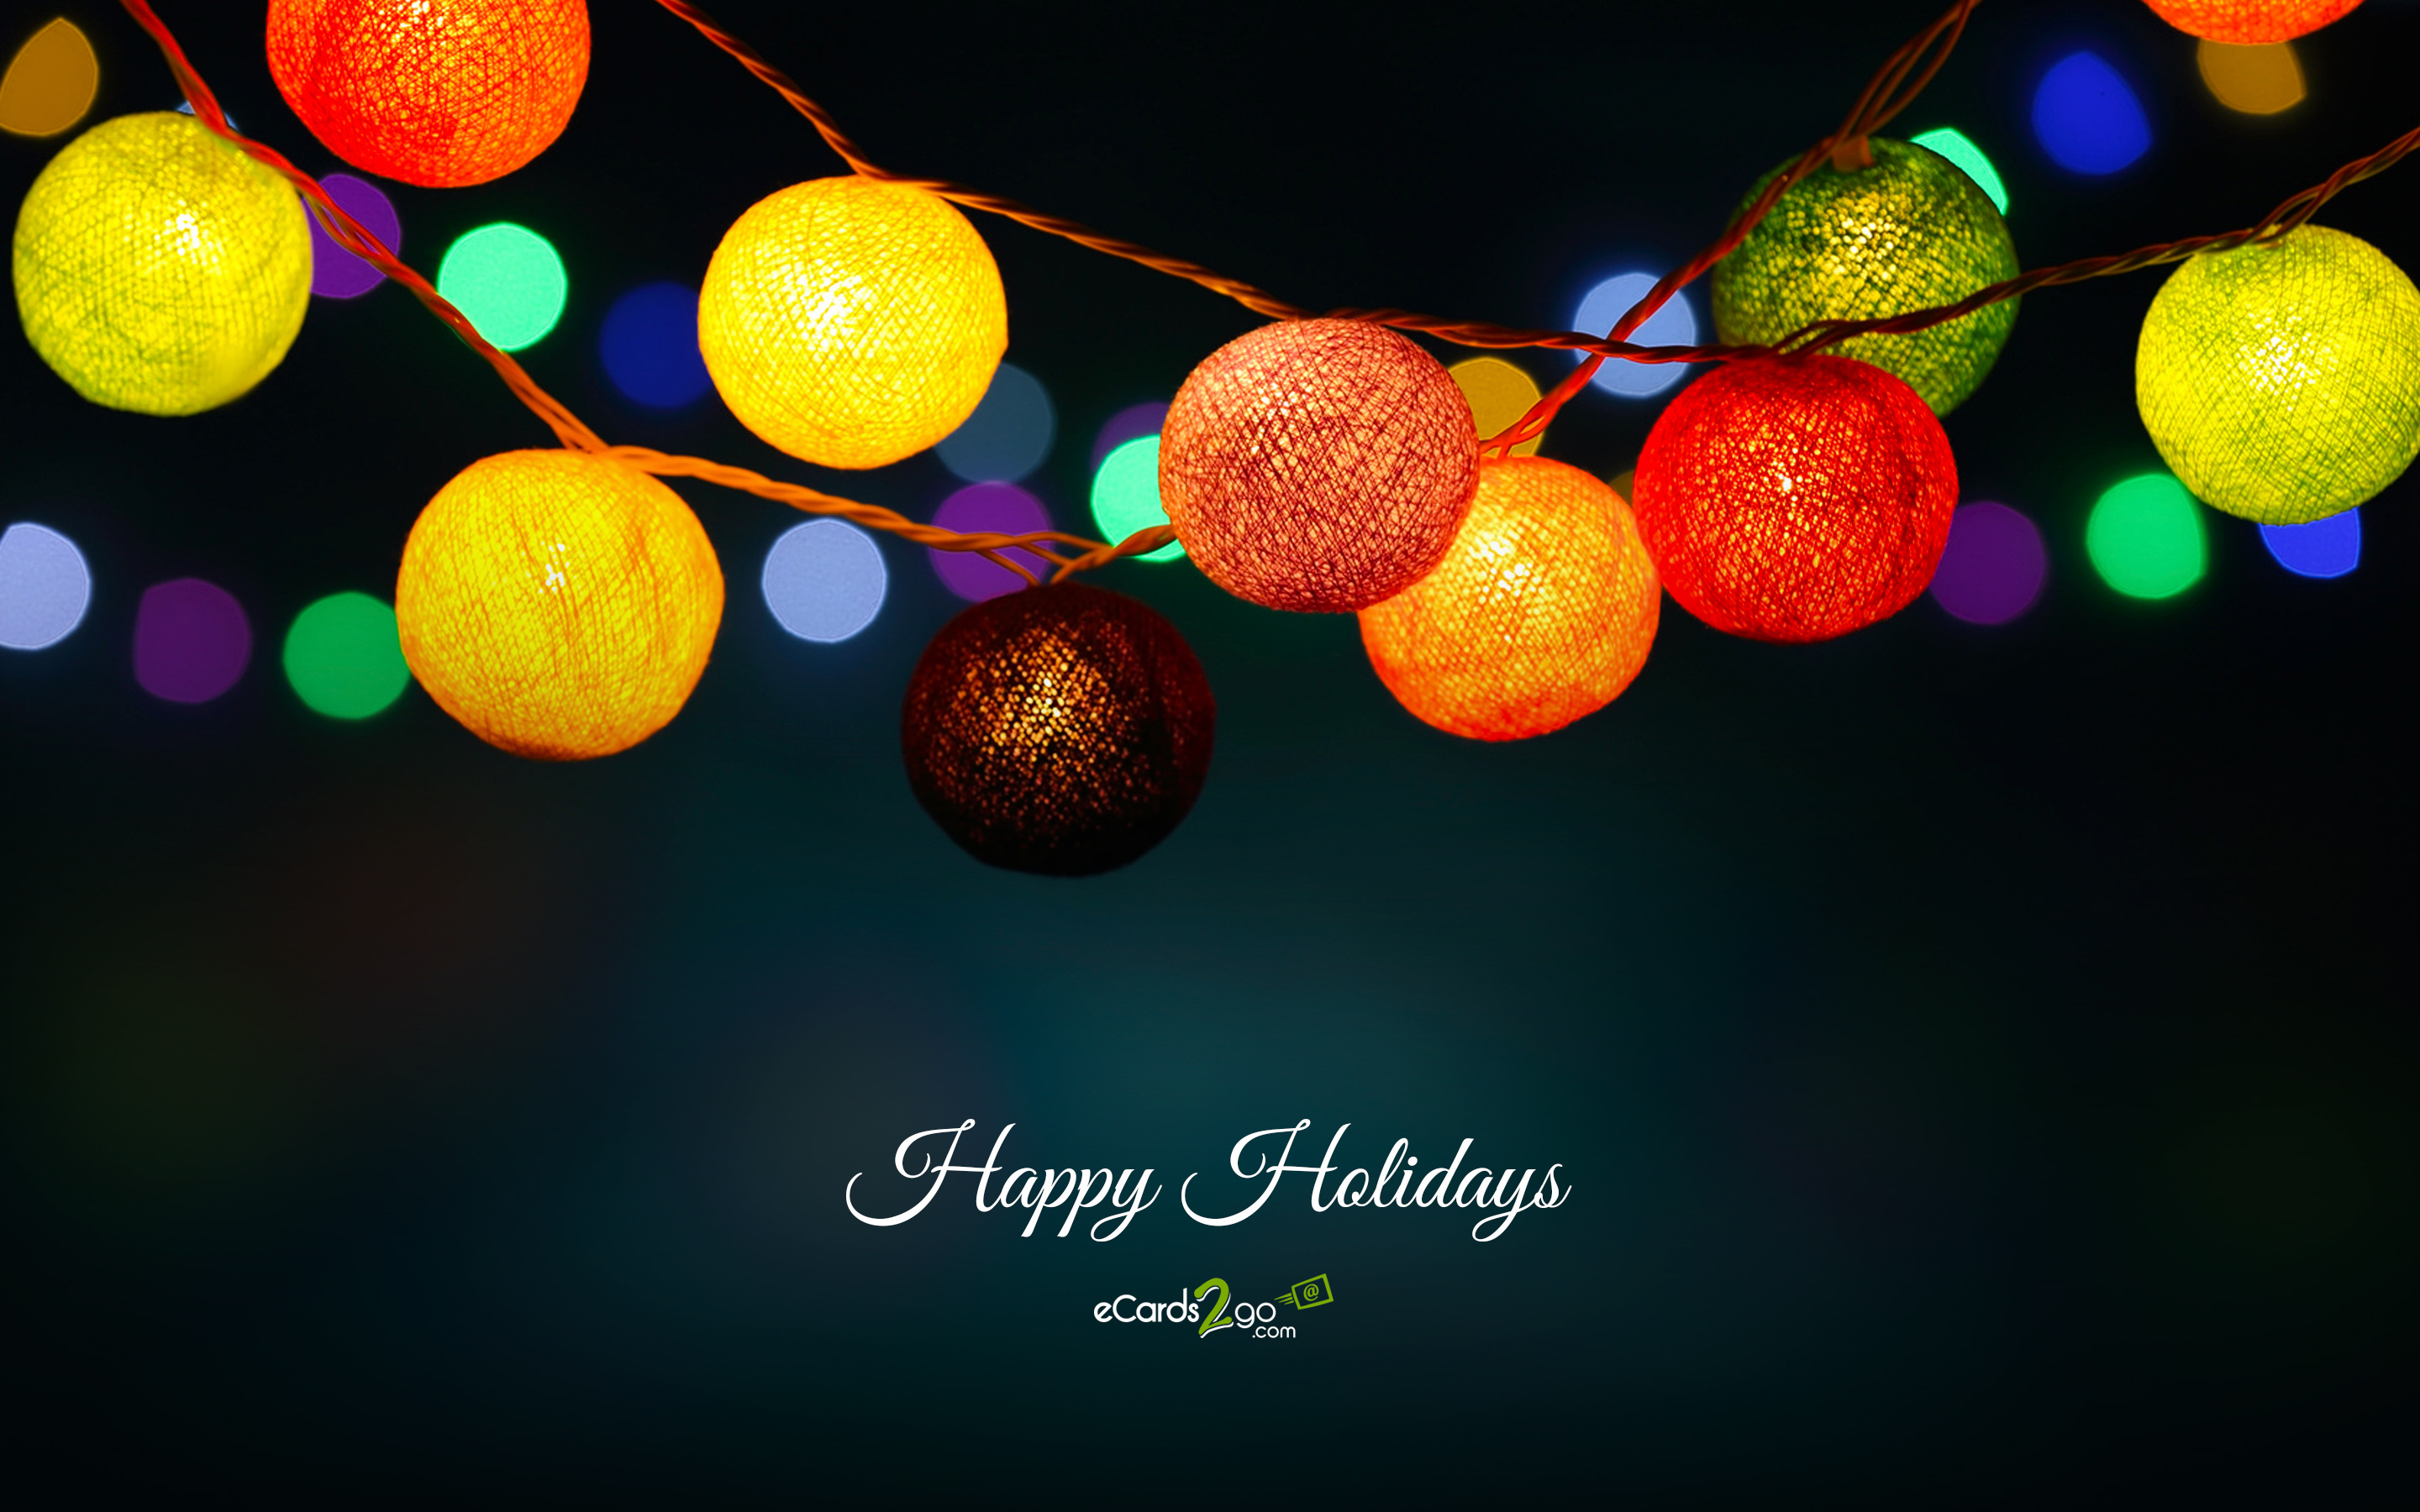 Desktop wallpapers holiday free - Desktop Wallpapers Holiday Free 6